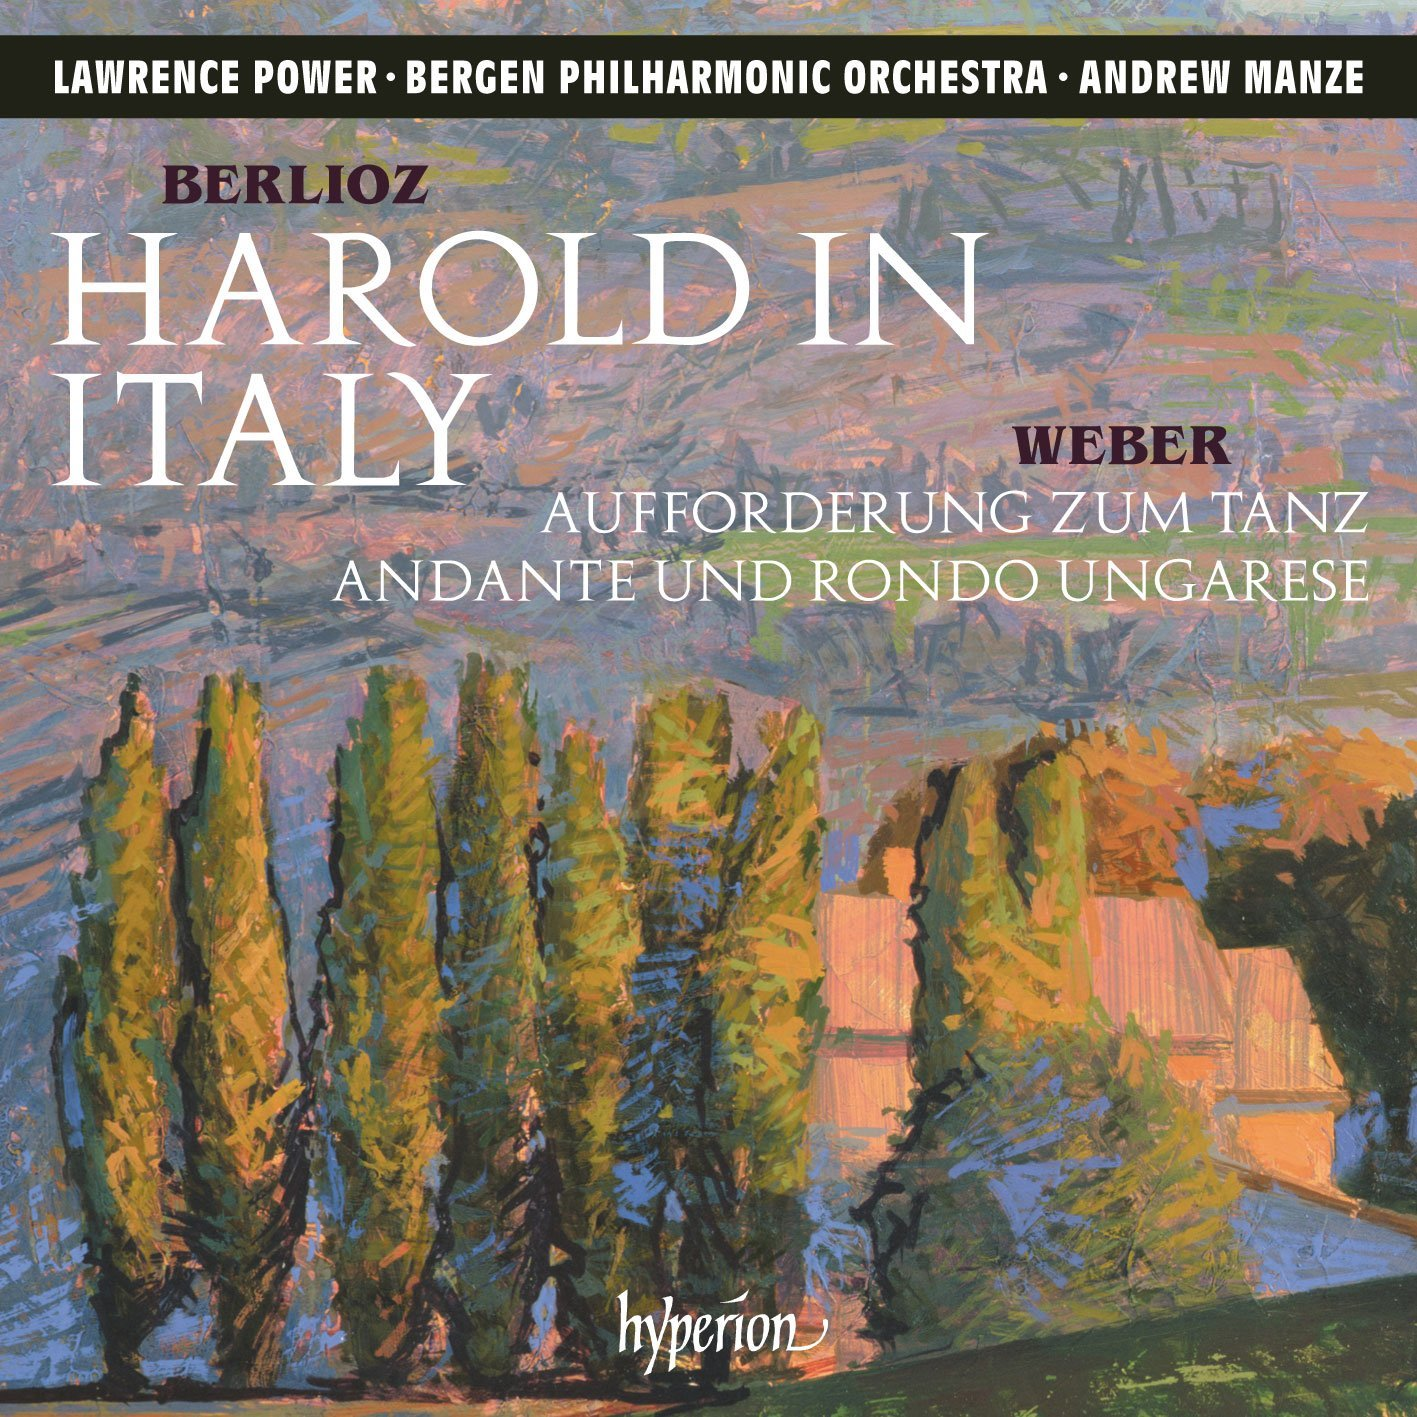 harold in italy hyperion manze